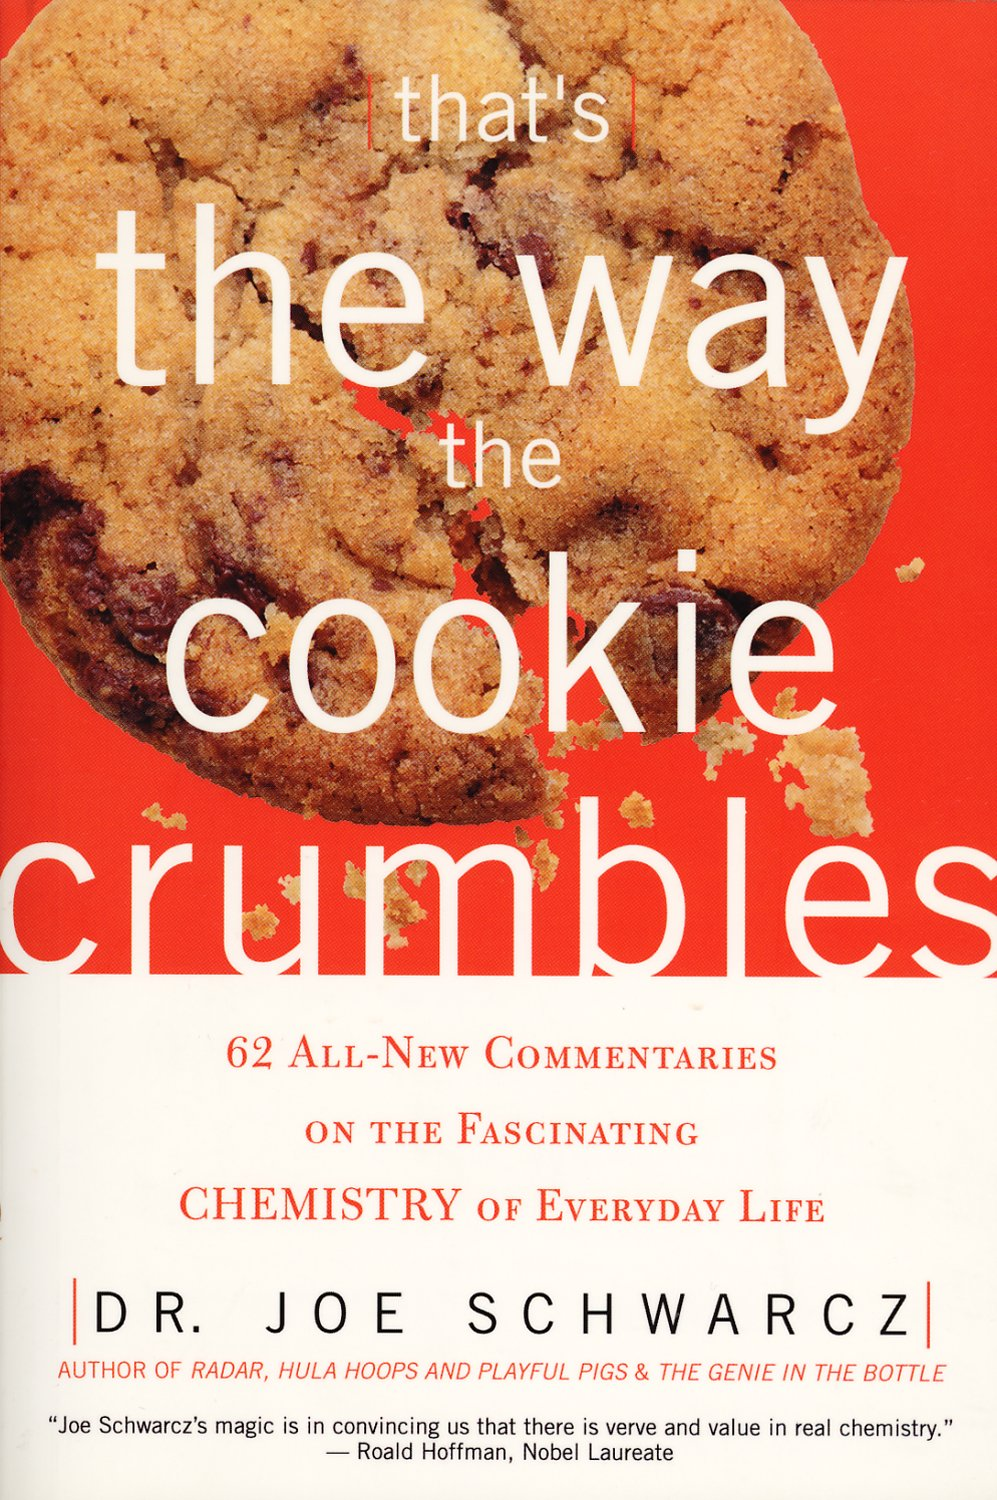 Thats the way the cookie crumbles 62 all new commentaries on the thats the way the cookie crumbles 62 all new commentaries on the fascinating chemistry of everyday life livros na amazon brasil 9781550225204 fandeluxe Gallery